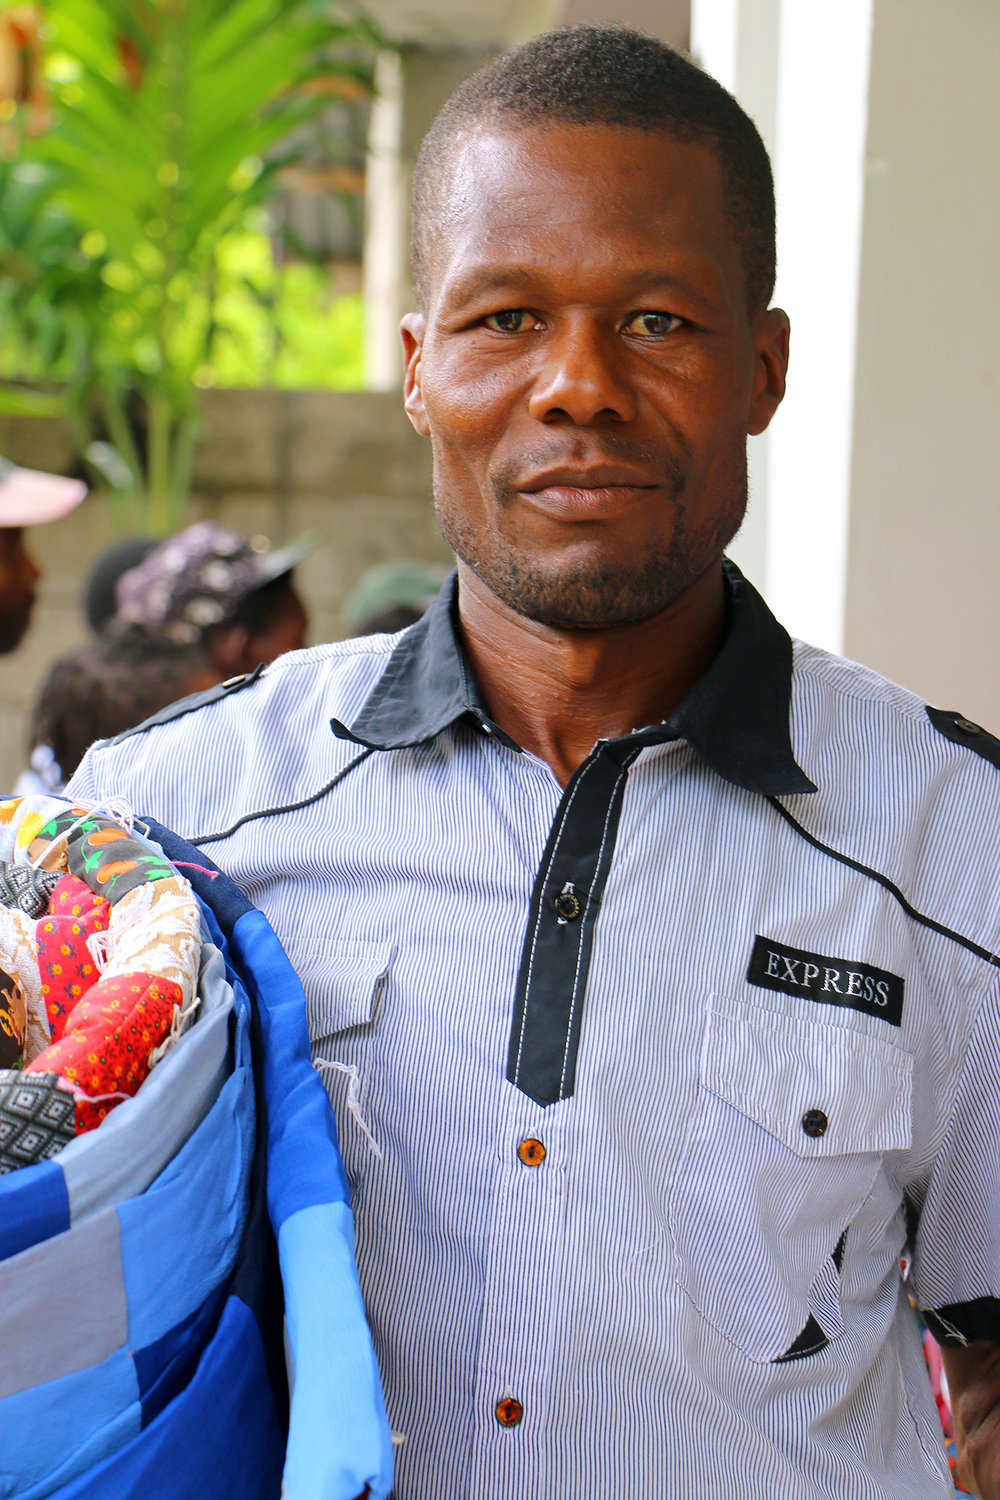 Bosto Poco receives MCC material aid in La Chapelle, Haiti, after Hurricane Irma struck the region in September, 2017. MCC Photo/Annalee Giesbrecht